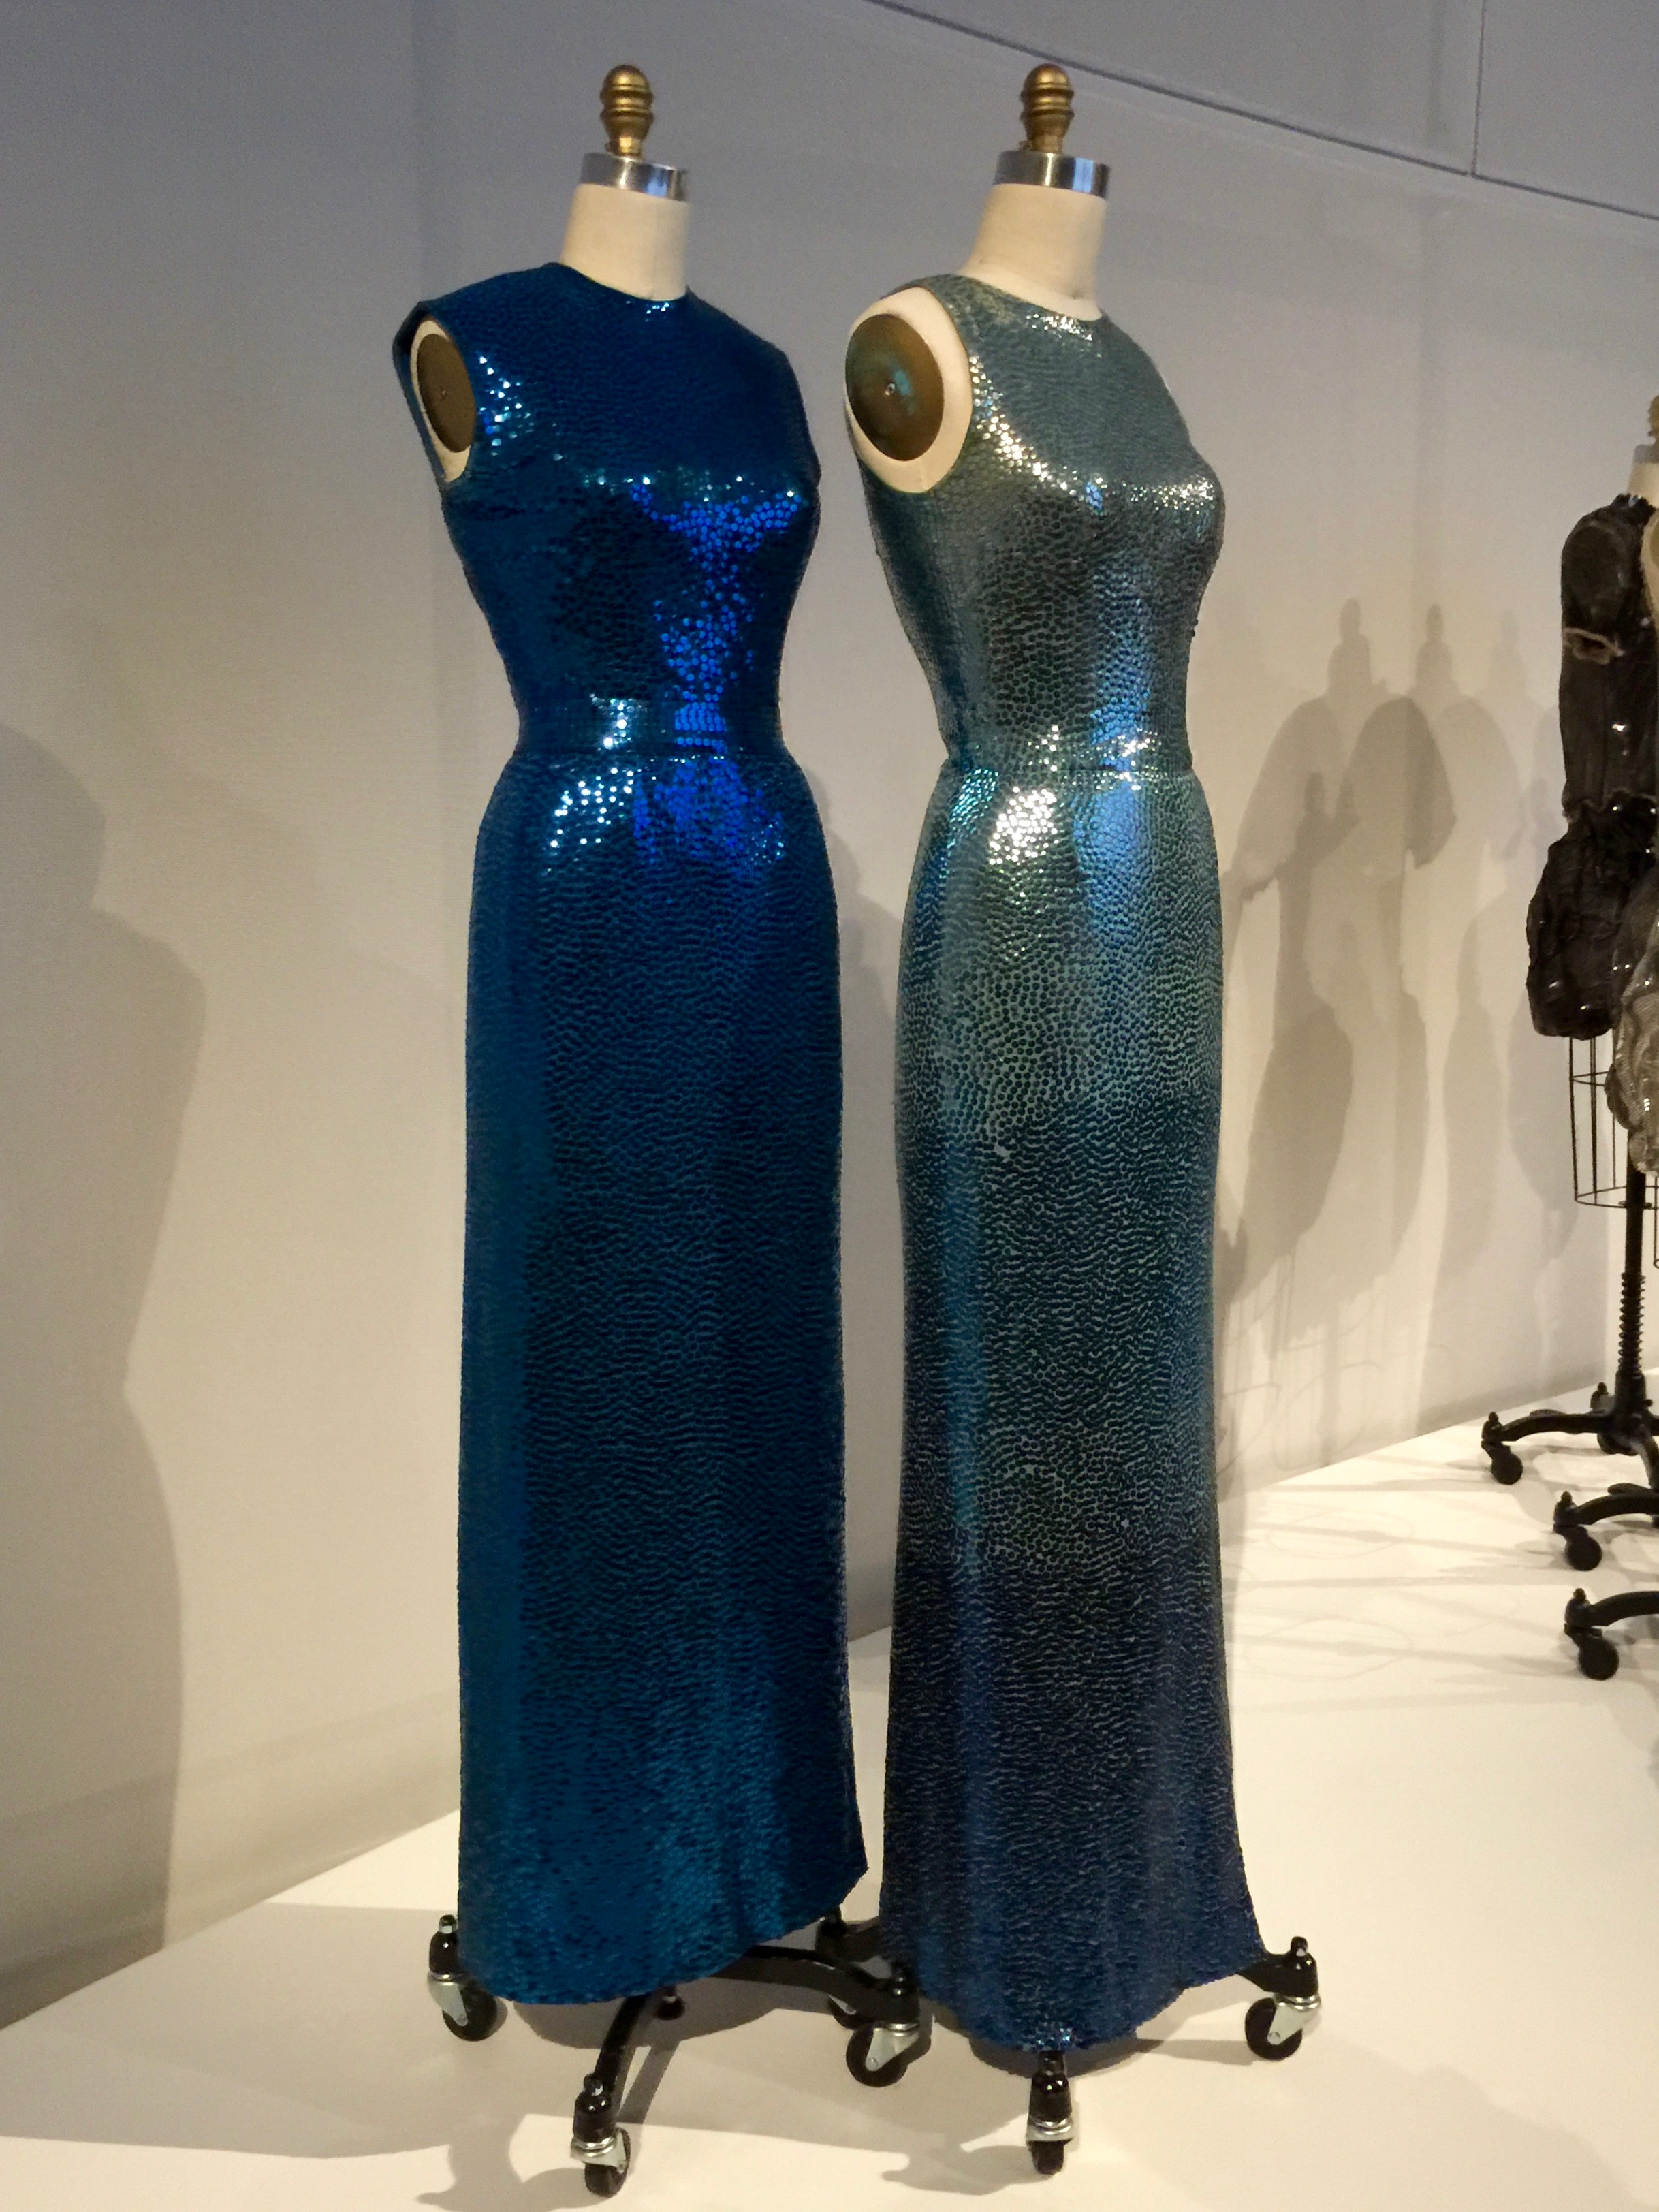 Norman Norell EVENING DRESS, Ca. 1953,pret-a-porter  Machine-sewn silk jersey, hand-embroidered with ombré gelatin sequins; machine-finished, hand-hemmed